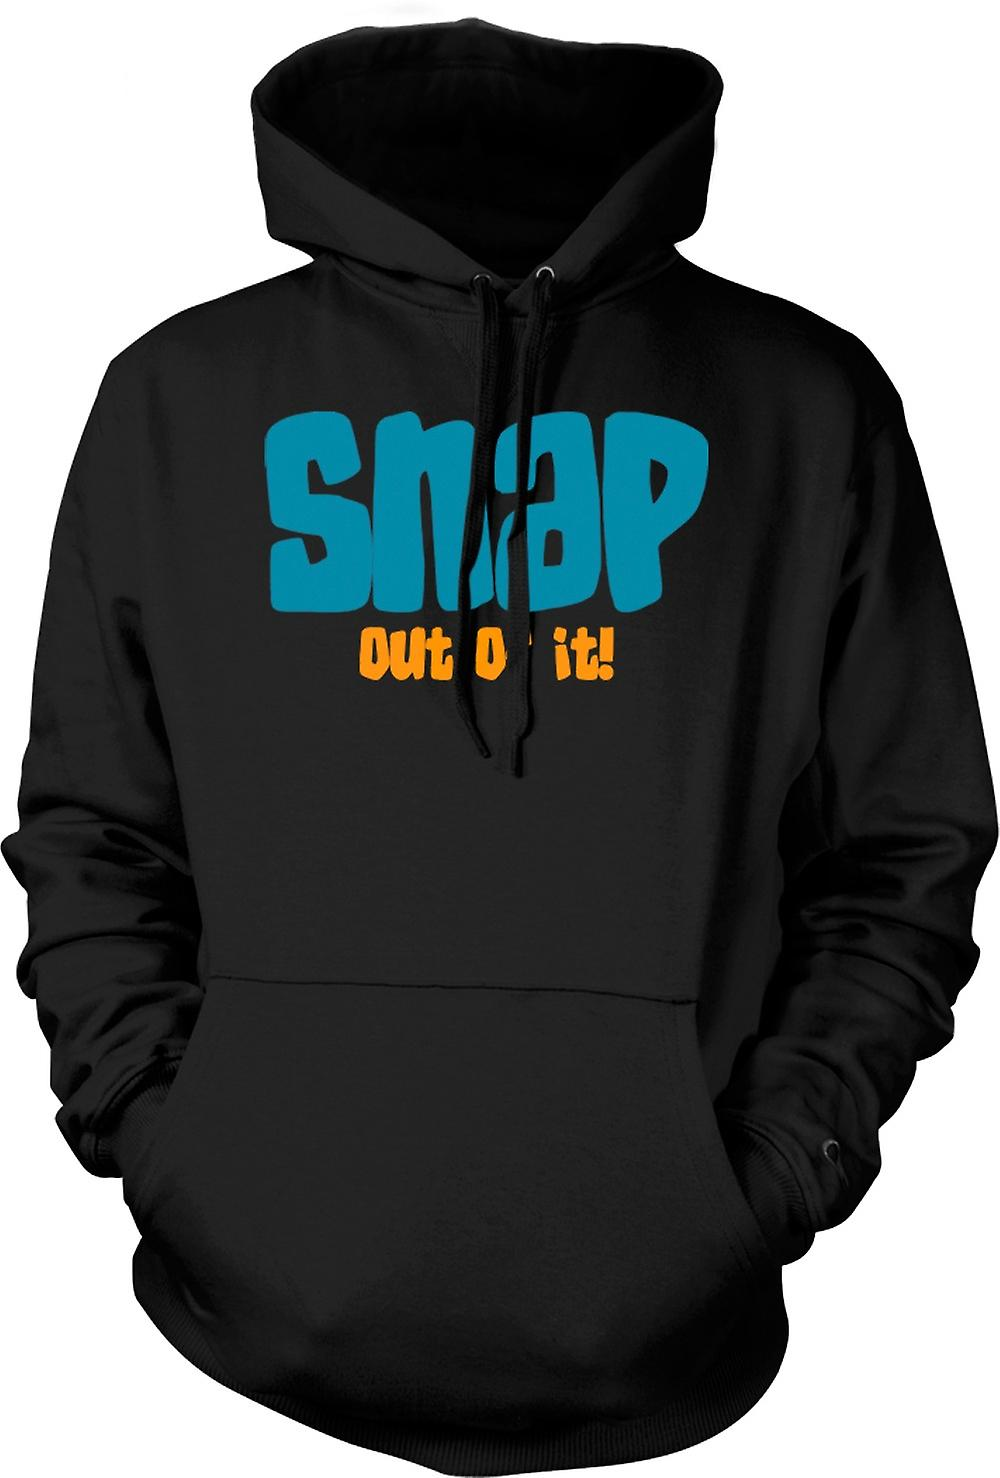 Mens-Hoodie - Mondsüchtig Snap out of It - lustig